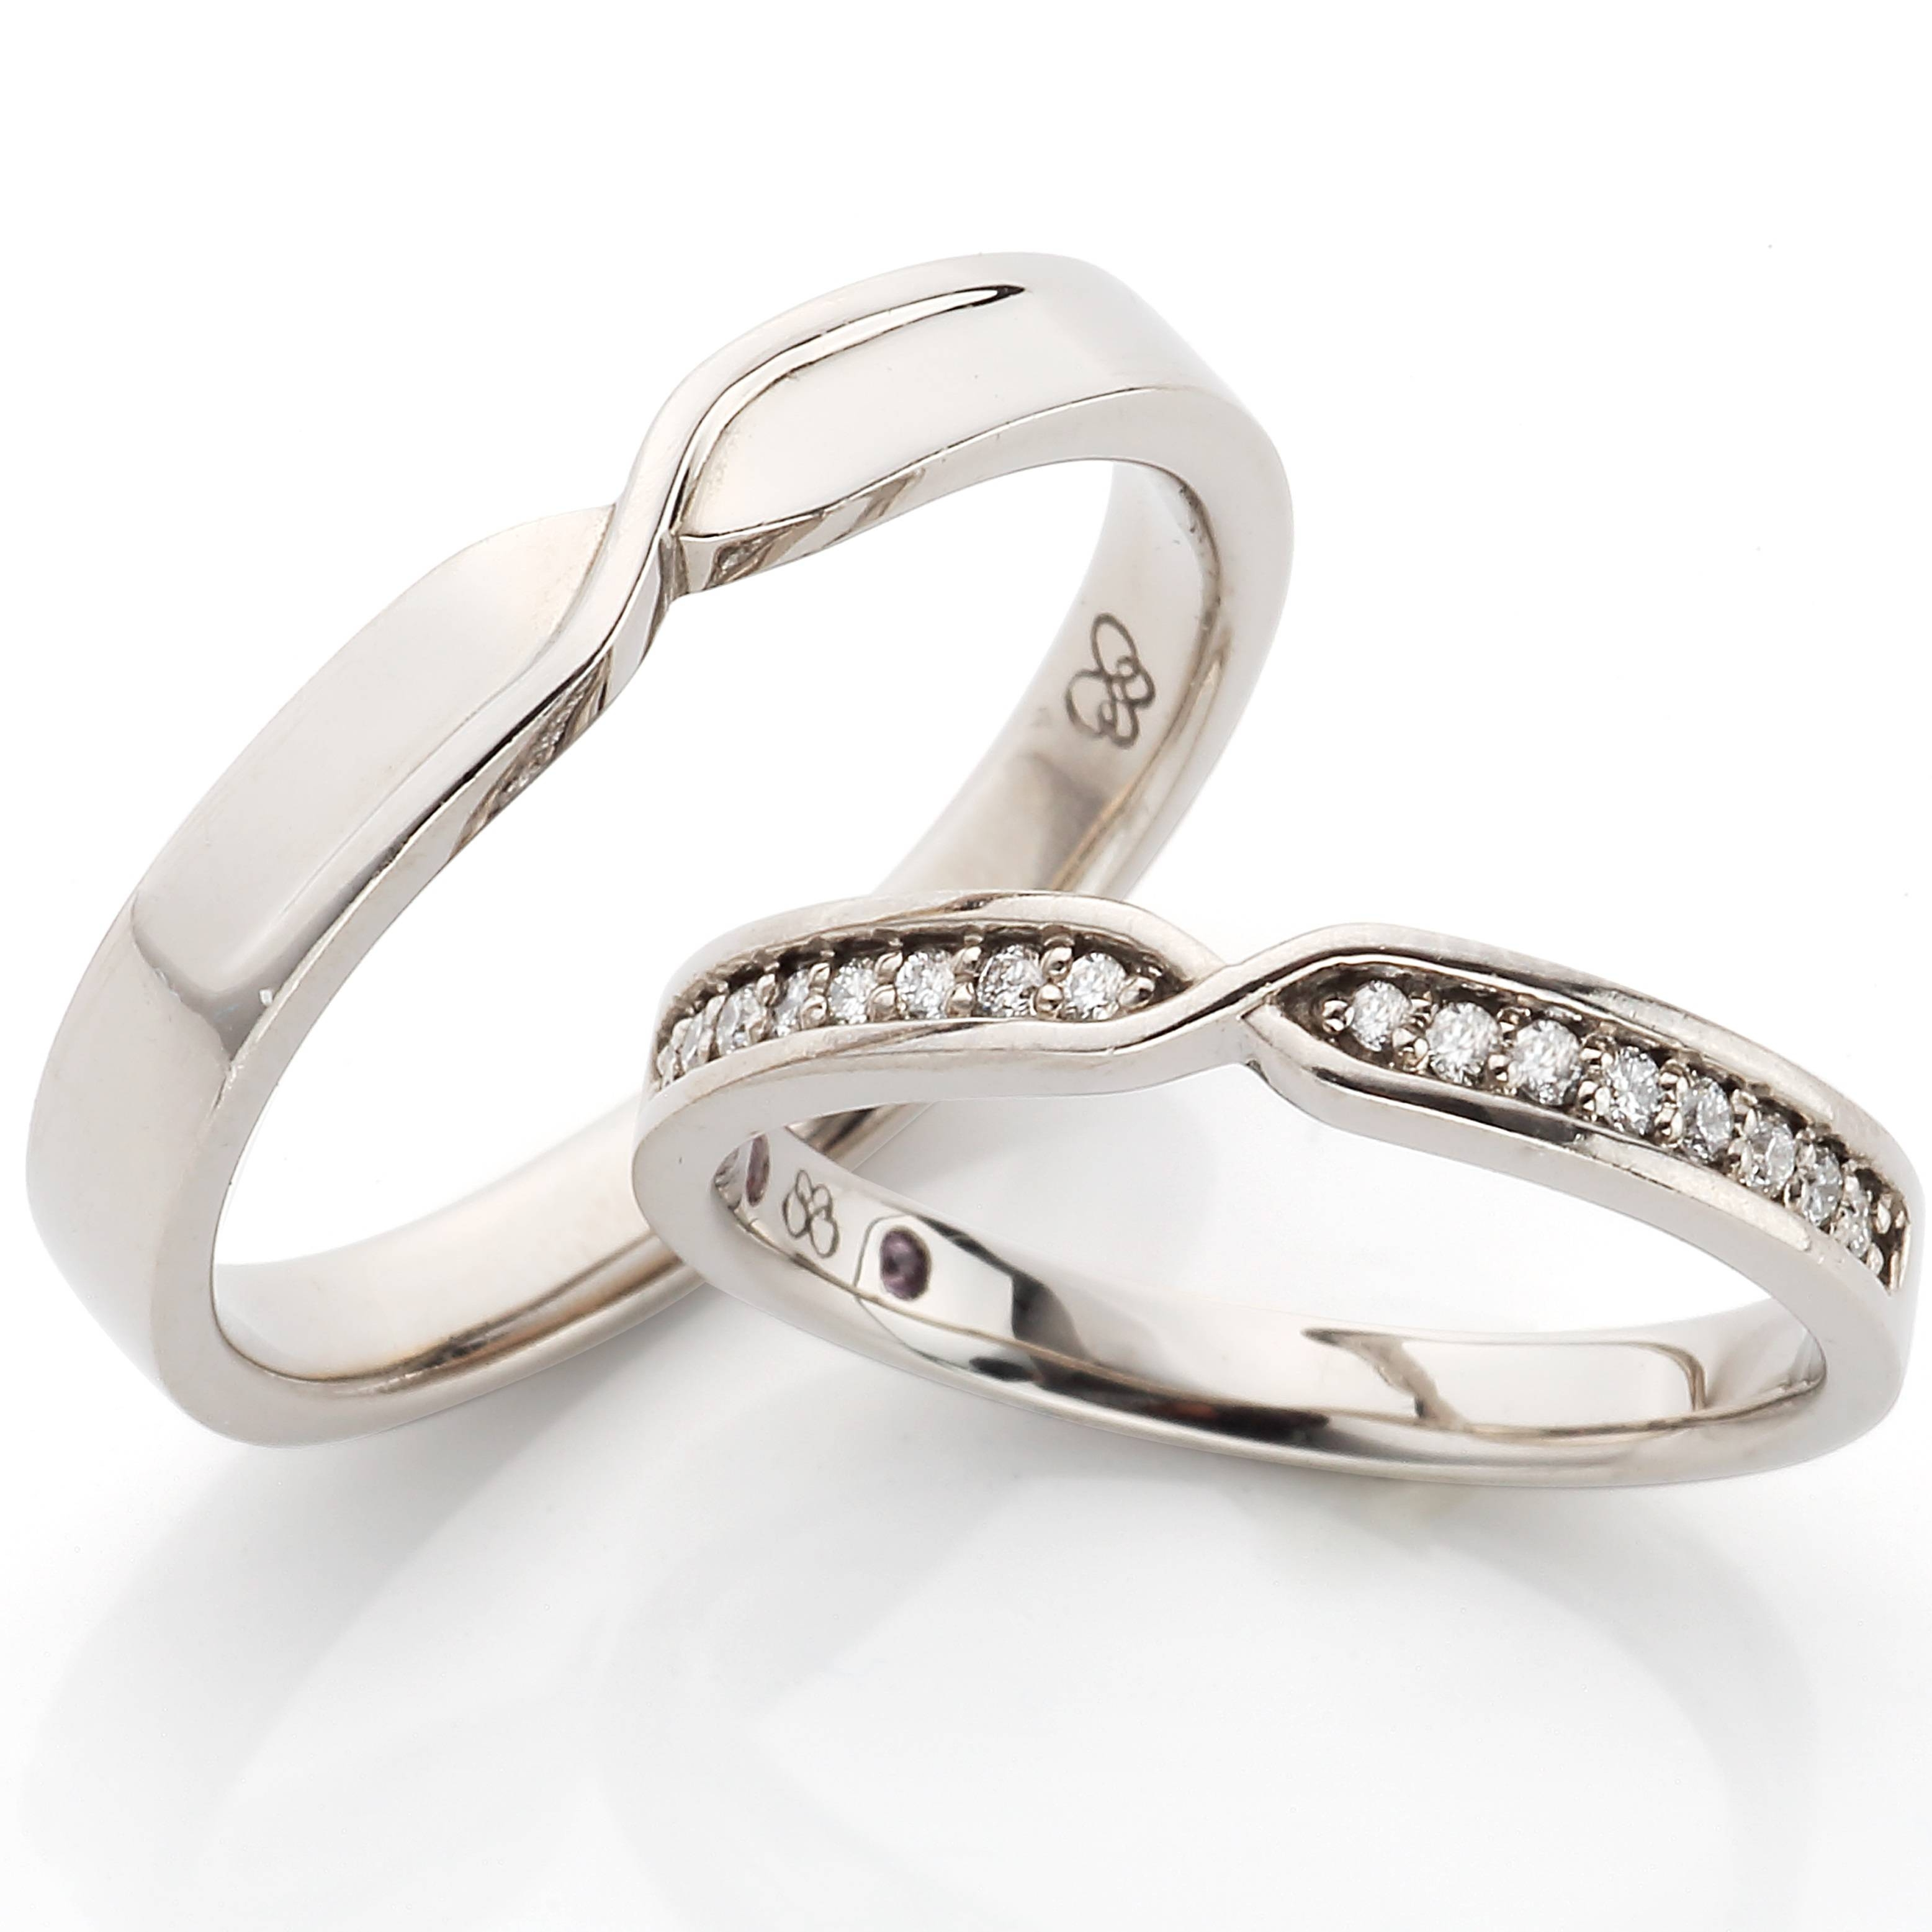 Infinity Design Venus Tears Wedding Band/engagement Ring Within Special Design Wedding Rings (View 2 of 15)